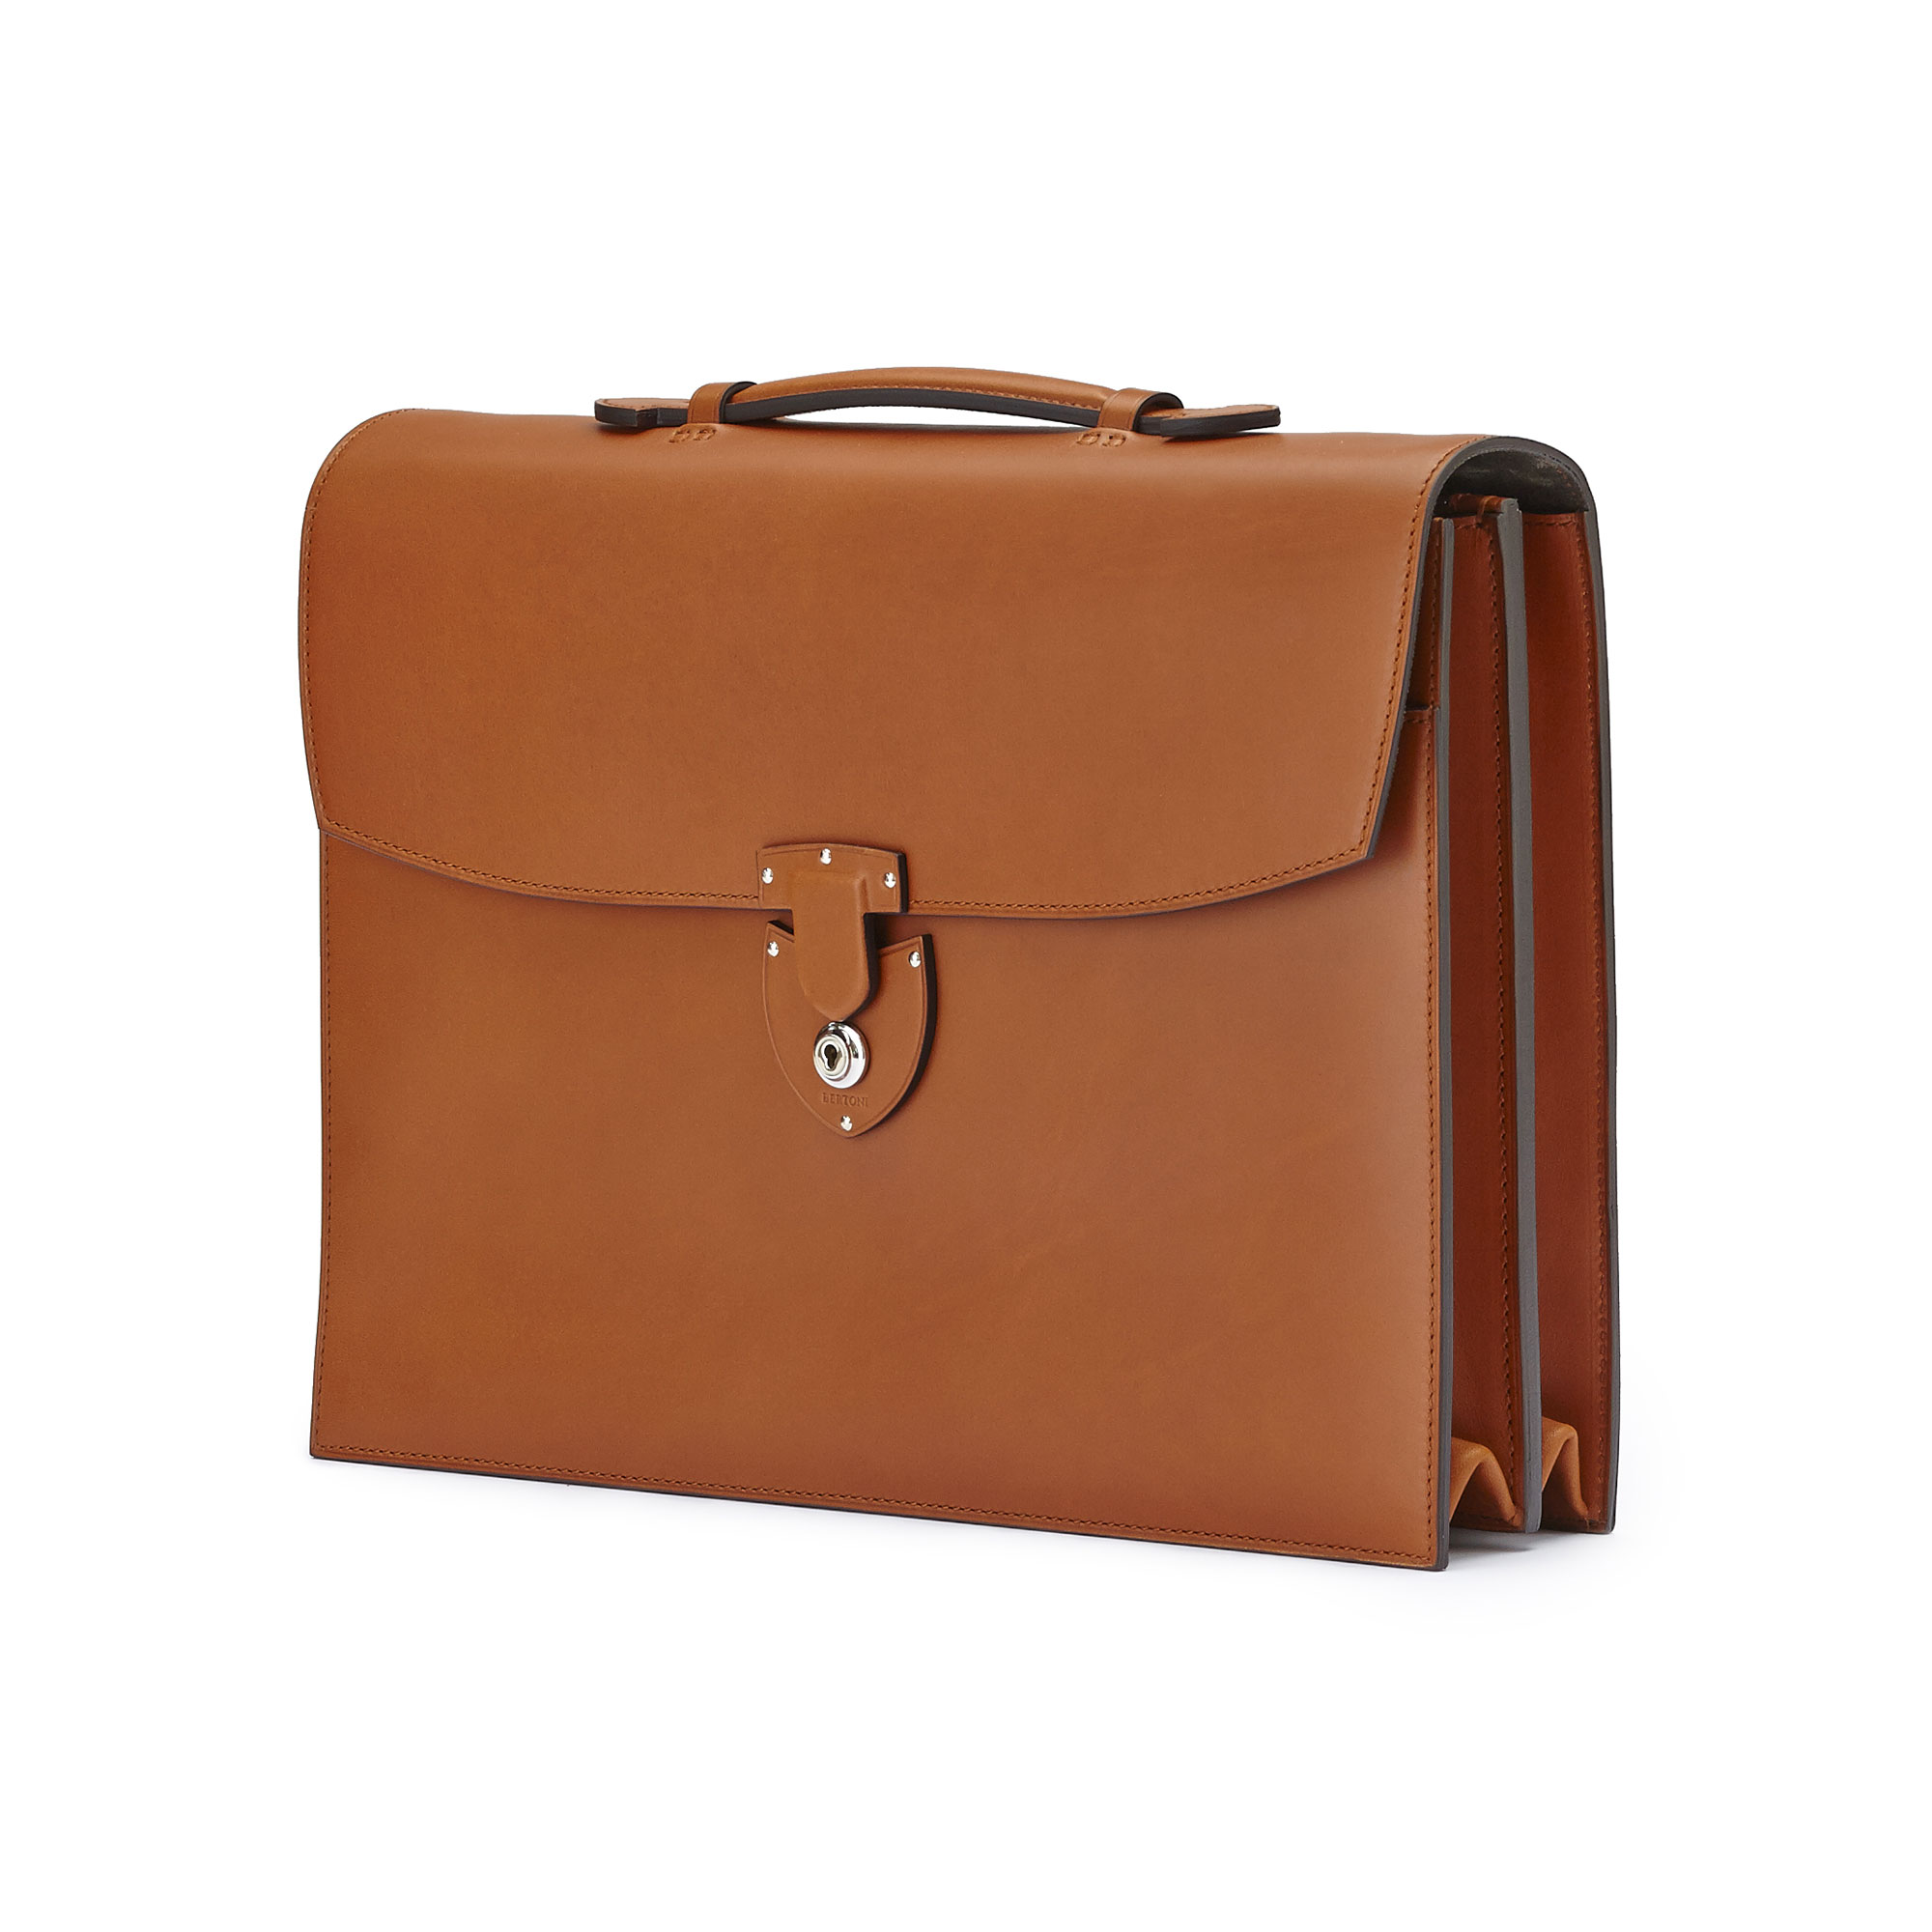 The terrabruciata french calf Double Gusset Briefcase by Bertoni 02